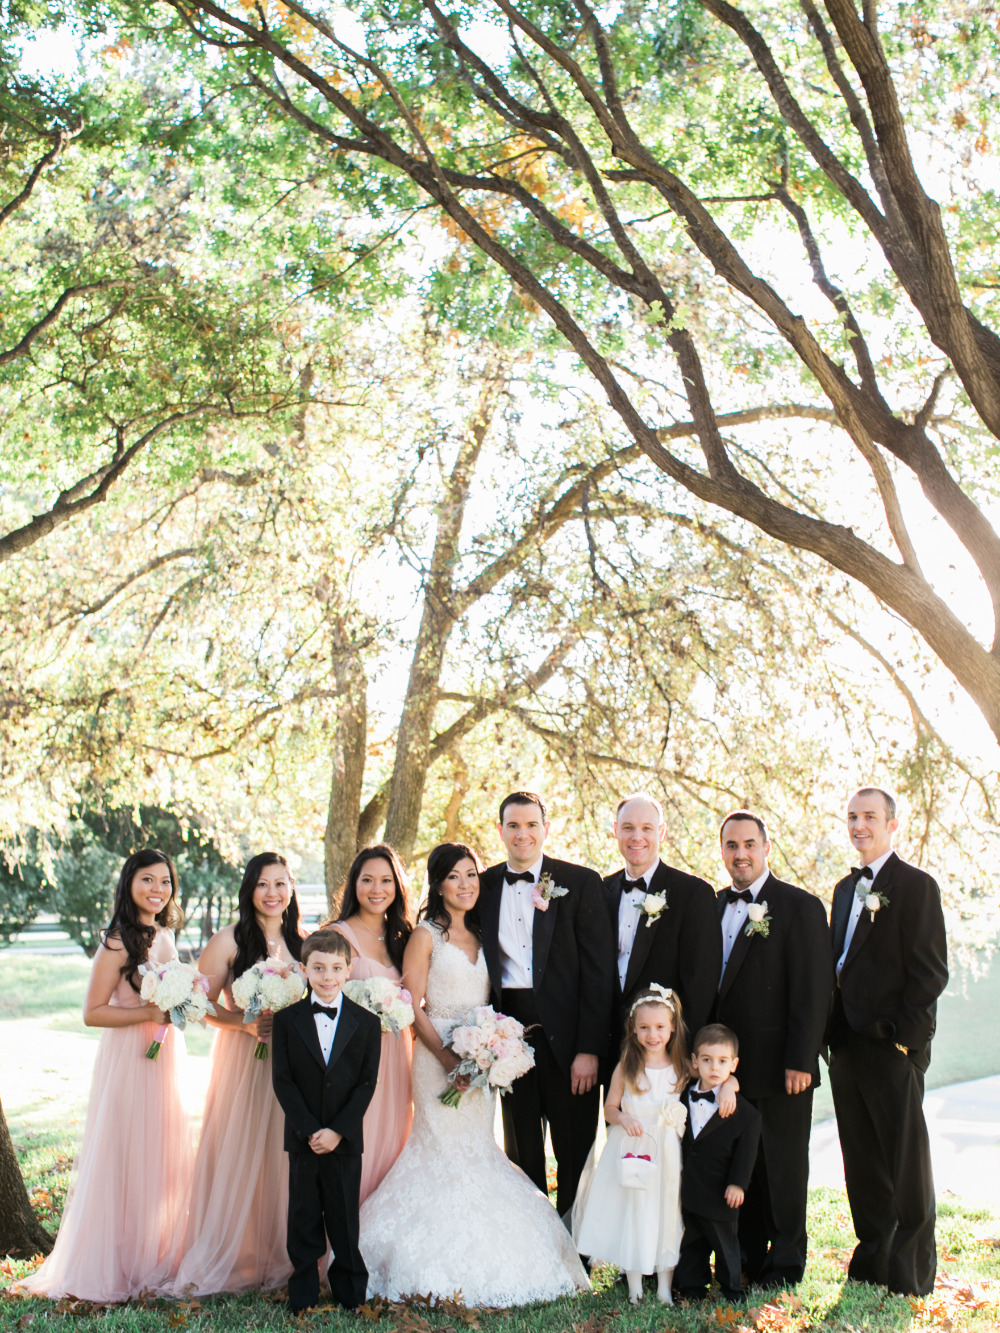 pink and black classic wedding party attire